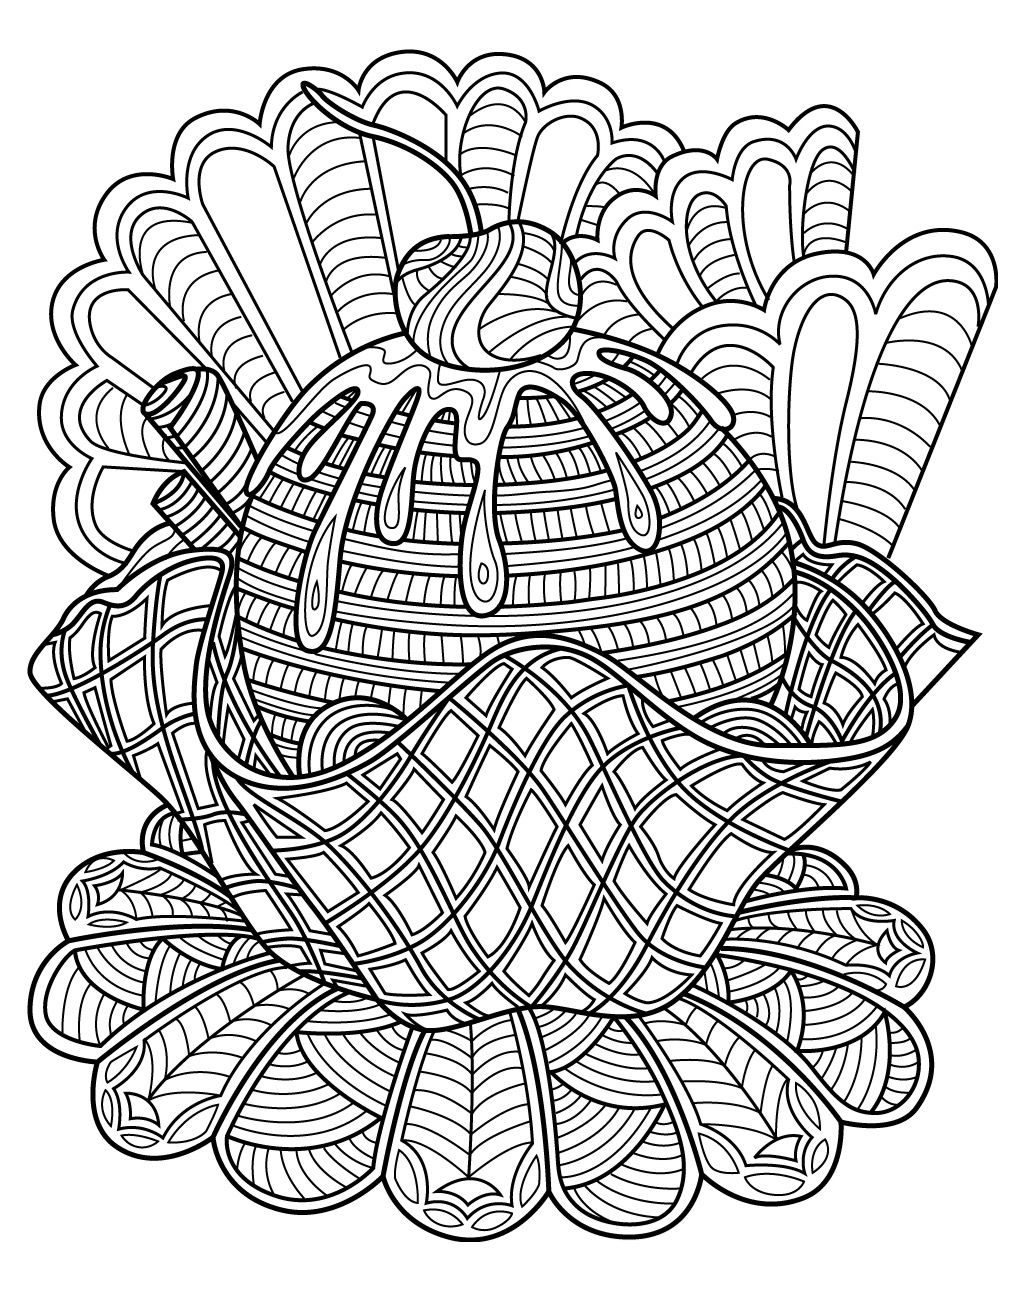 sweets coloring pages Sweets coloring page | Colorish: free coloring app for adults by  sweets coloring pages